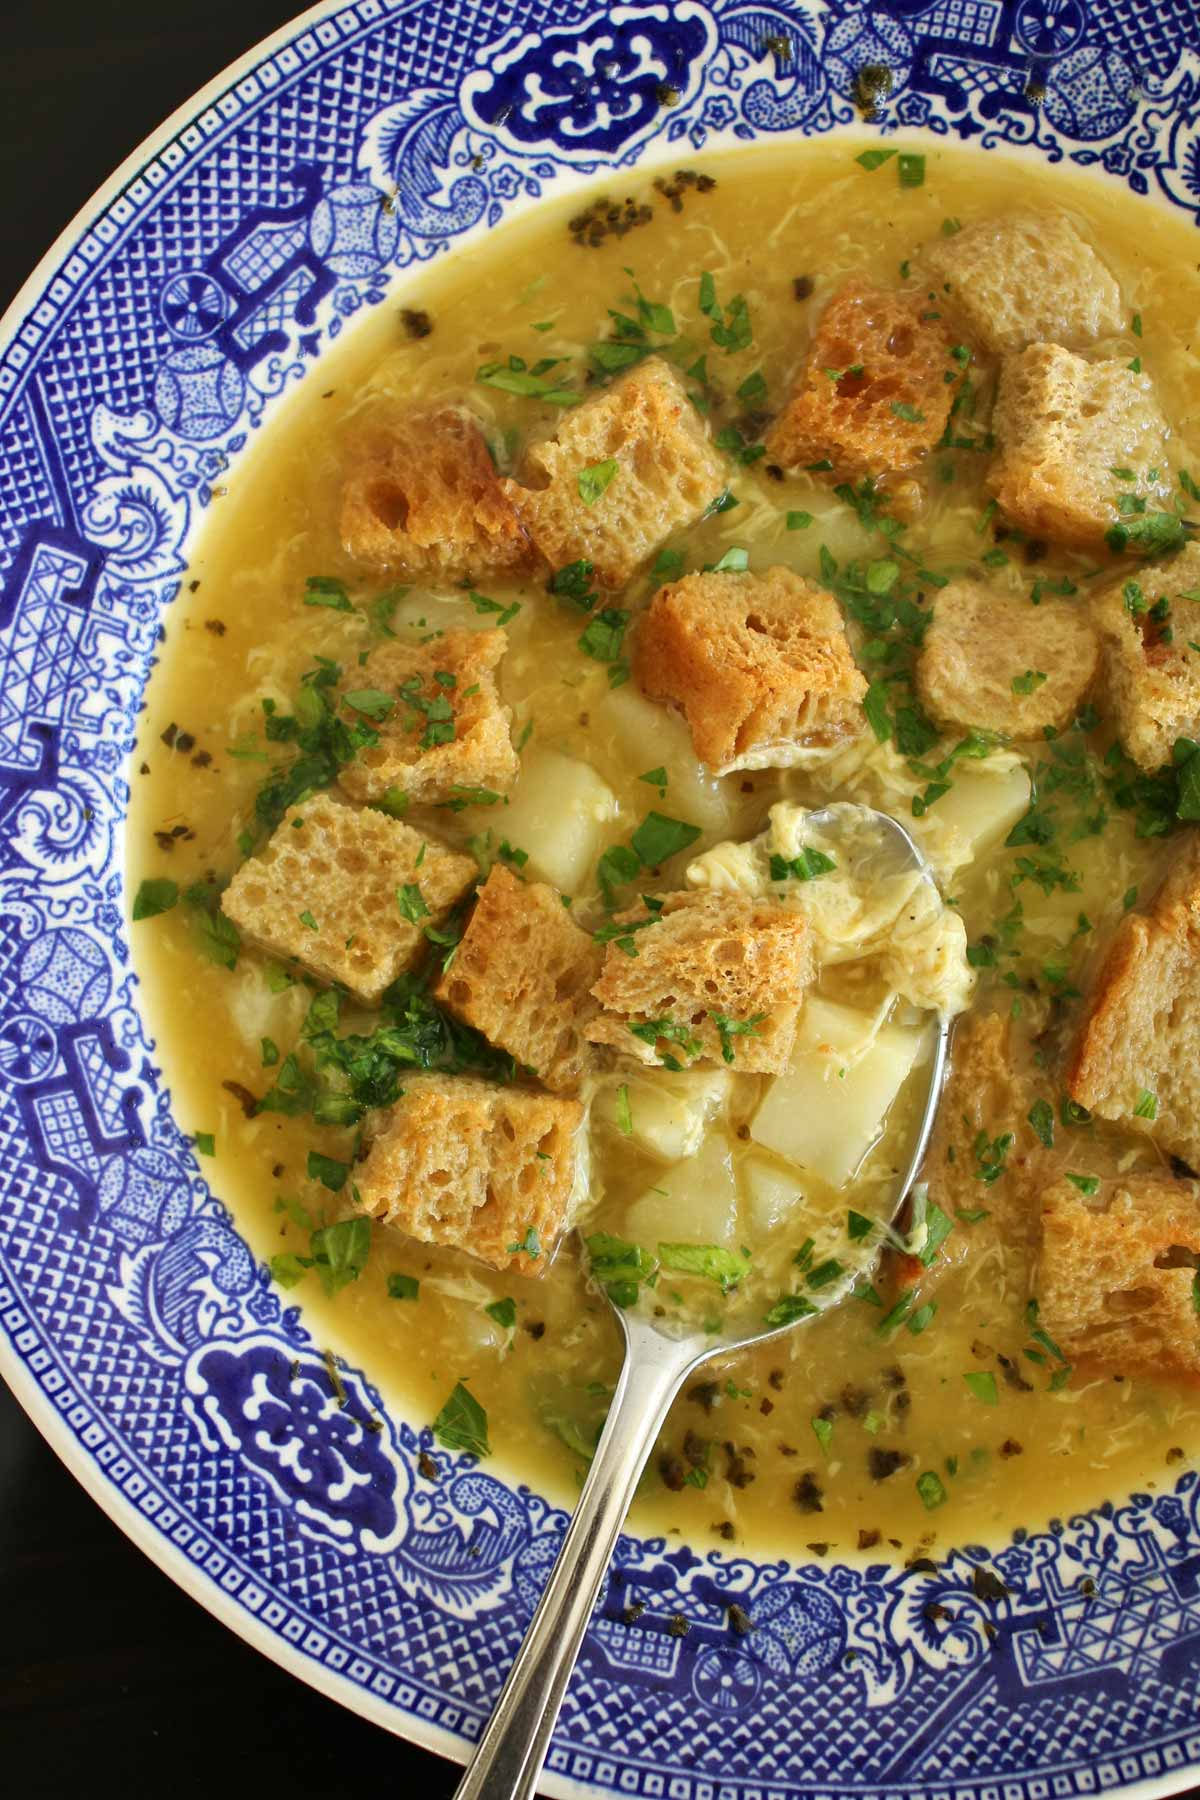 Czech garlic soup topped with rye croutons in a blue and white bowl.